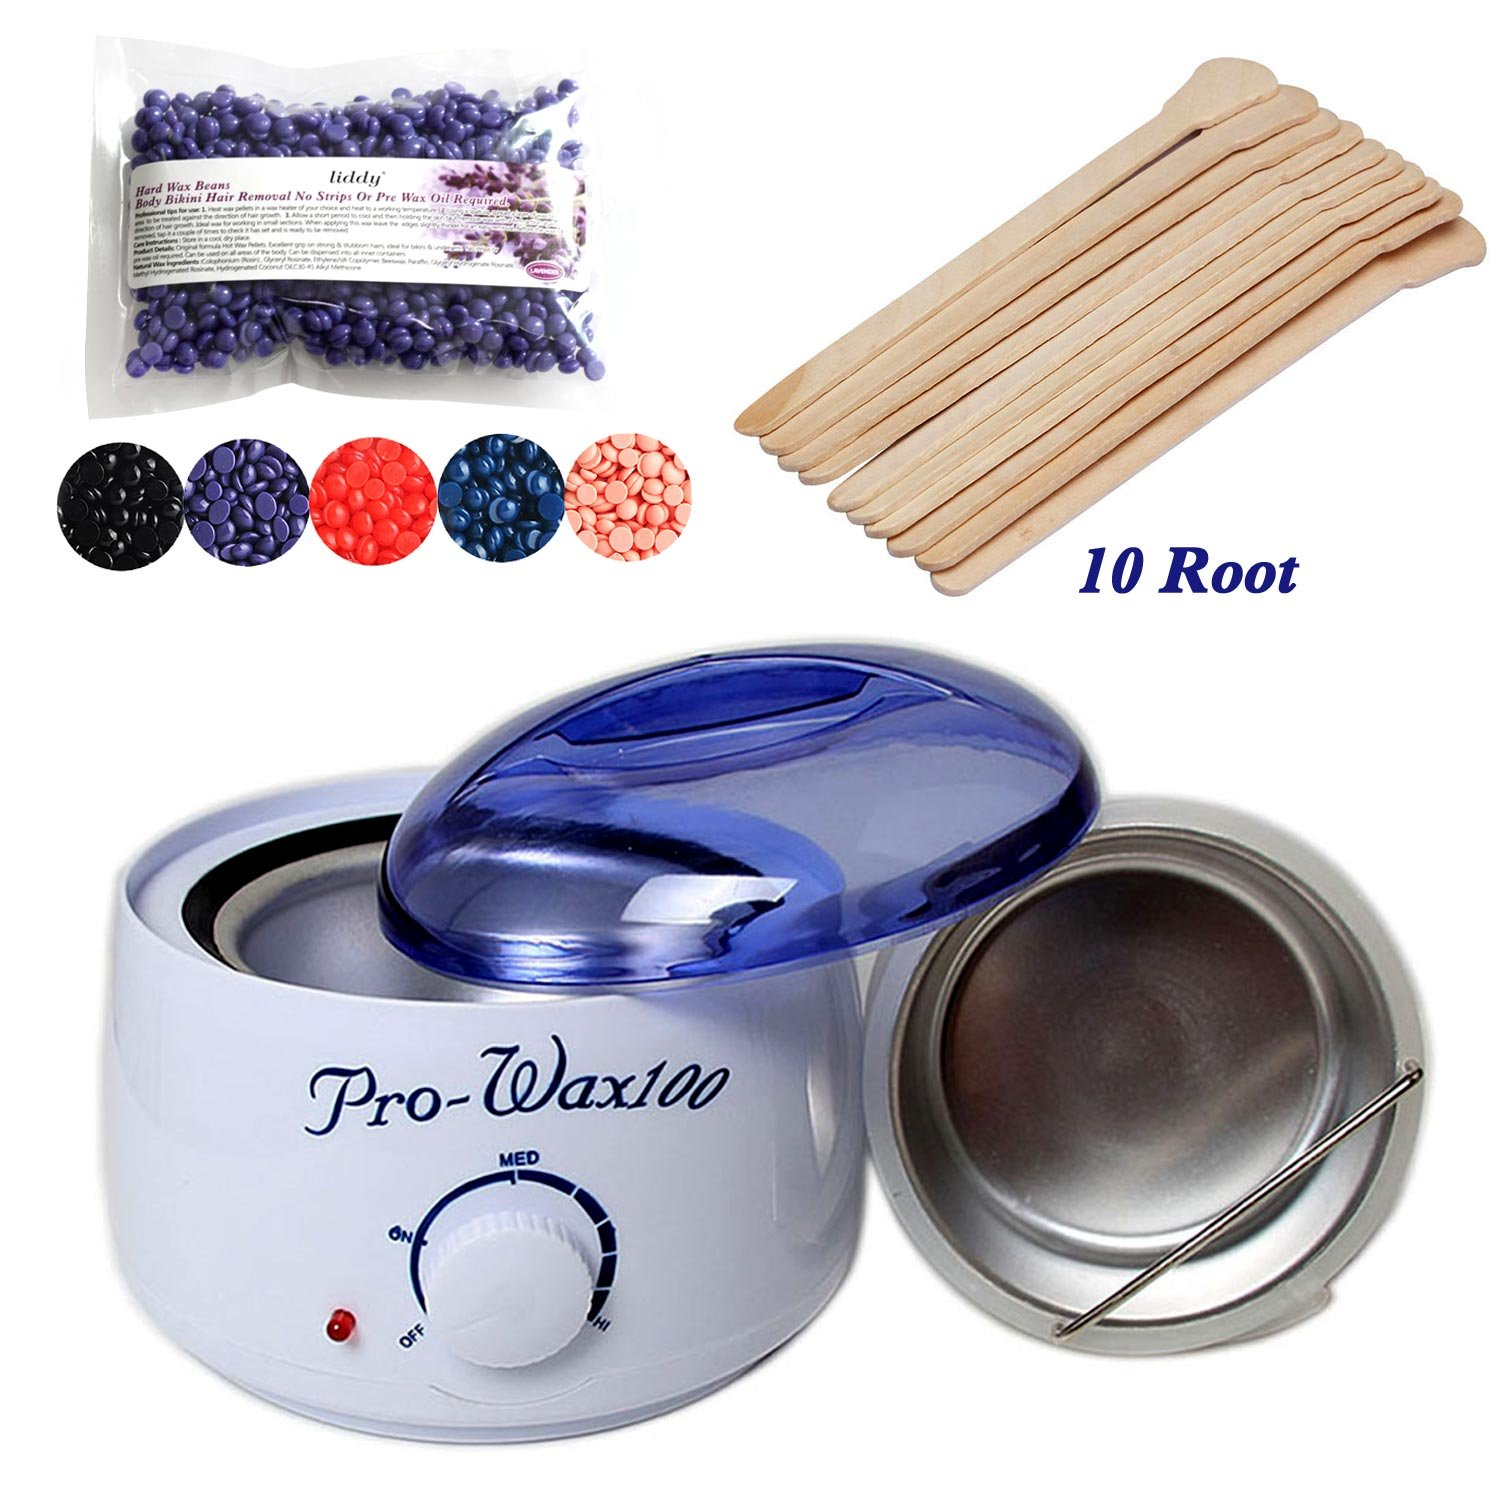 Waxing Kit Electric Wax Warmer with Hard Wax Beans and 10PCs Wax Applicator Sticks, Chamomile,Lavender,Black,Rose,Strawberry (1 Wax Warmer + 10 Wax Applicator Sticks + Lavender Wax Beans) Nolonger